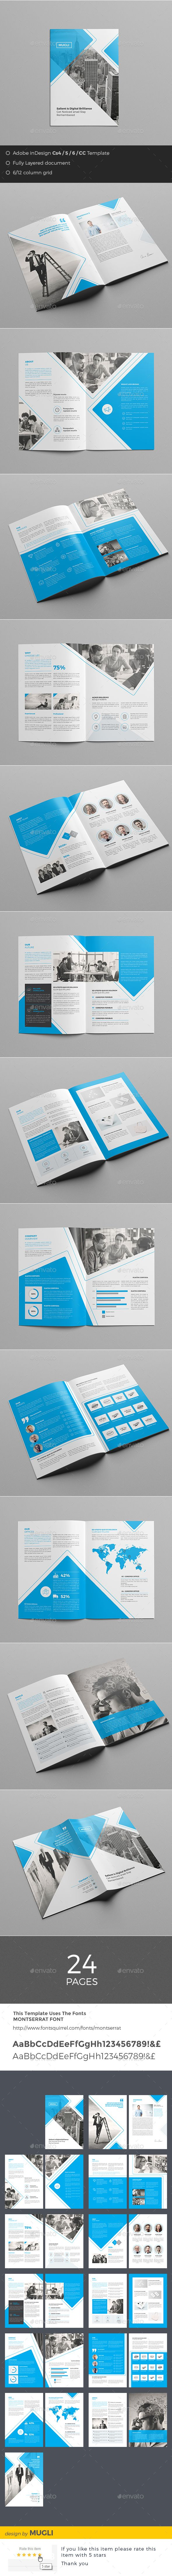 Business Brochure - Corporate Brochures. If you're a user experience professional, listen to The UX Blog Podcast on iTunes.